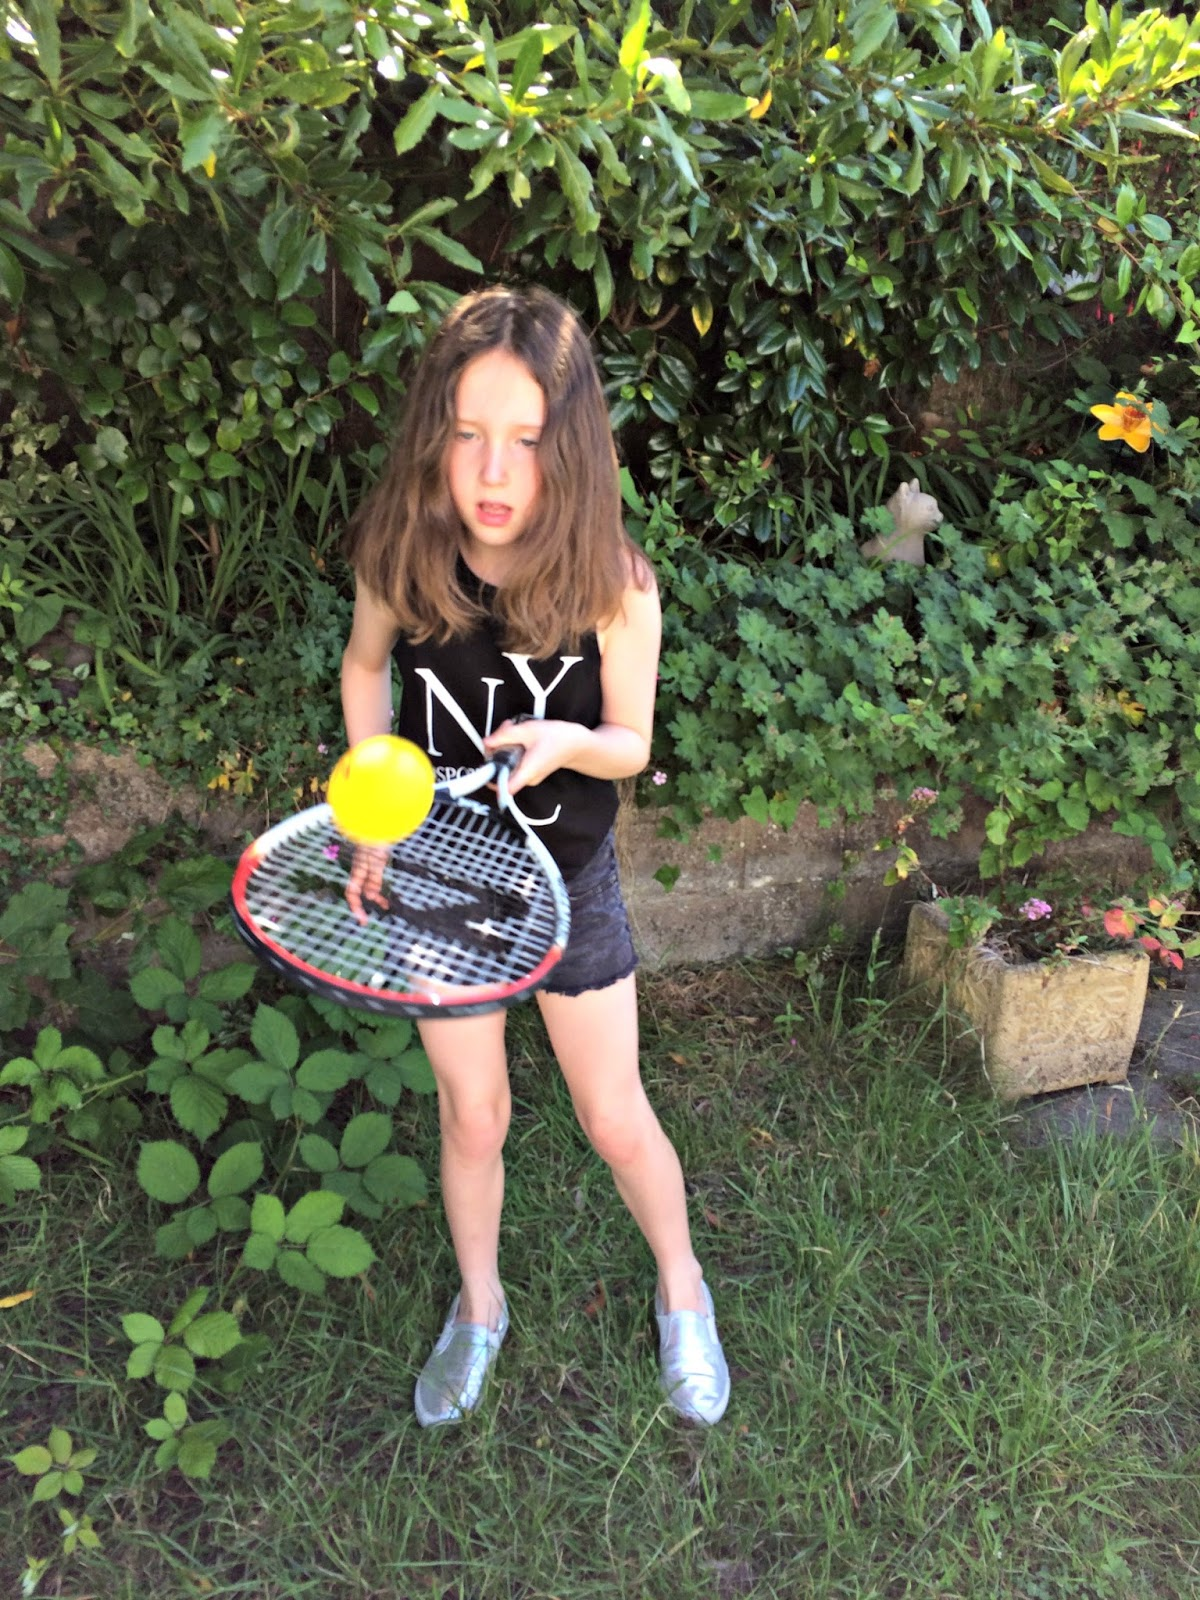 Caitlin balancing a tennis ball on her racquet